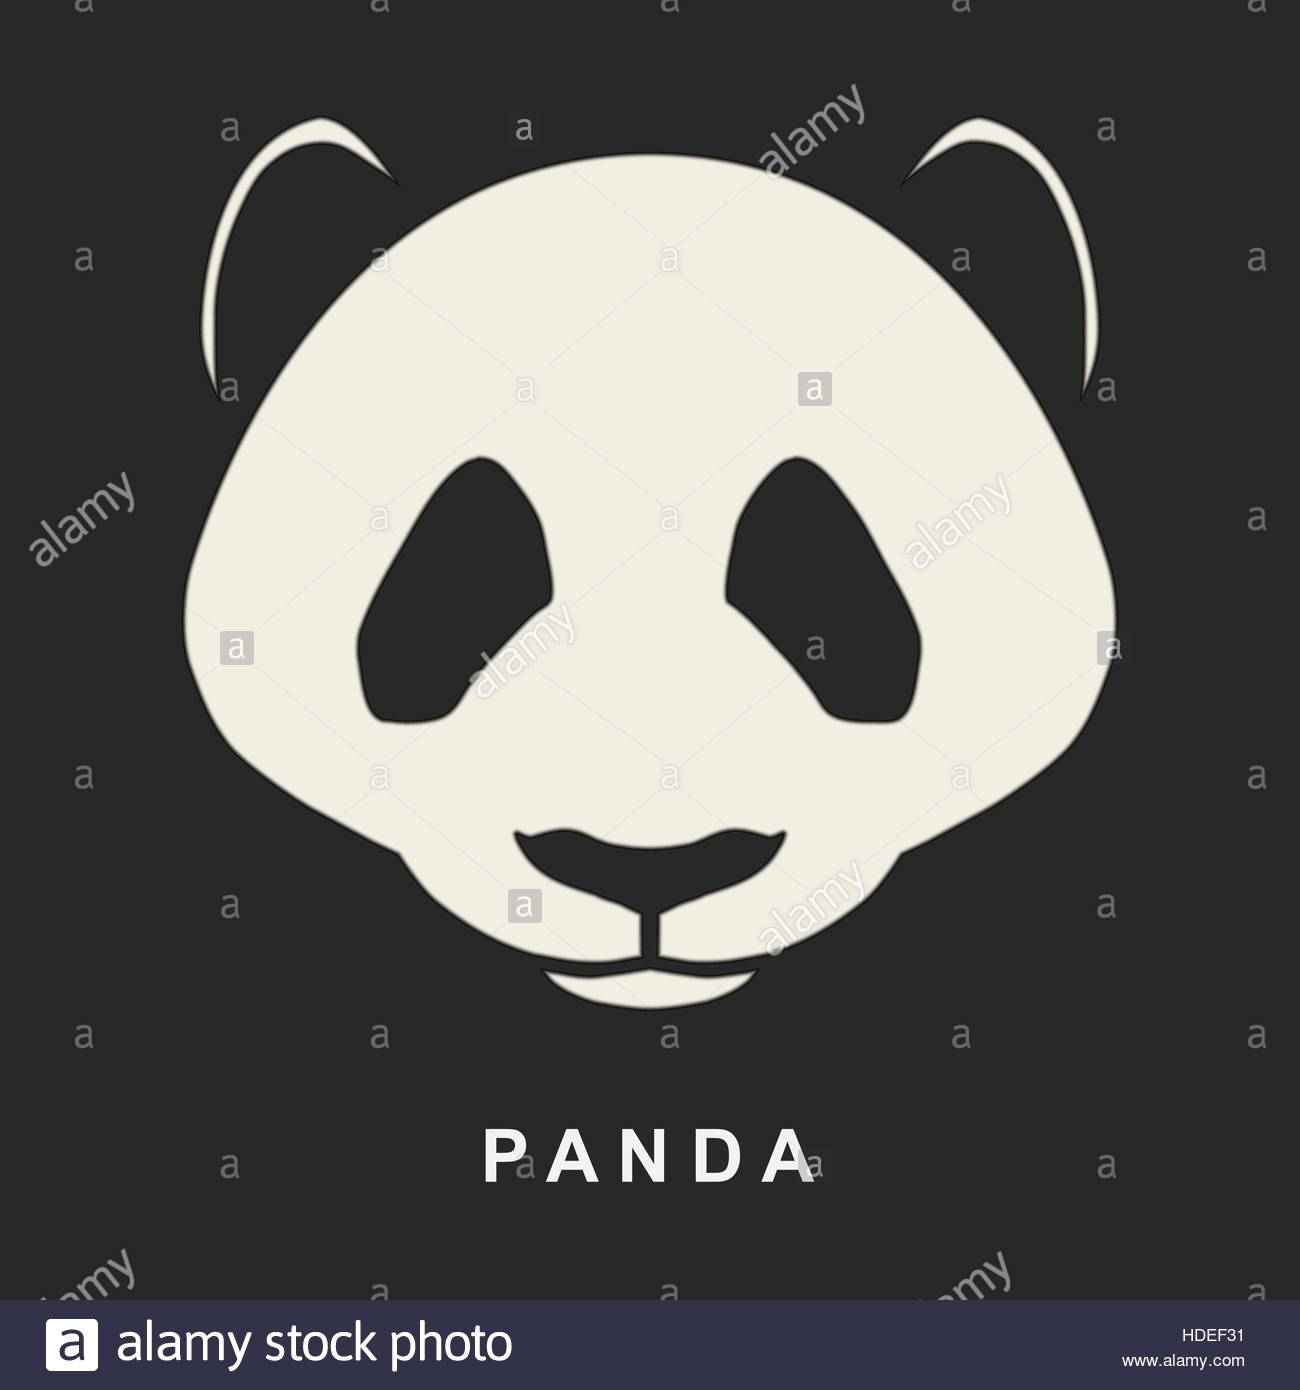 vector image of chinese panda bear cute bear snout logo stock vector art illustration vector image 128782277 alamy